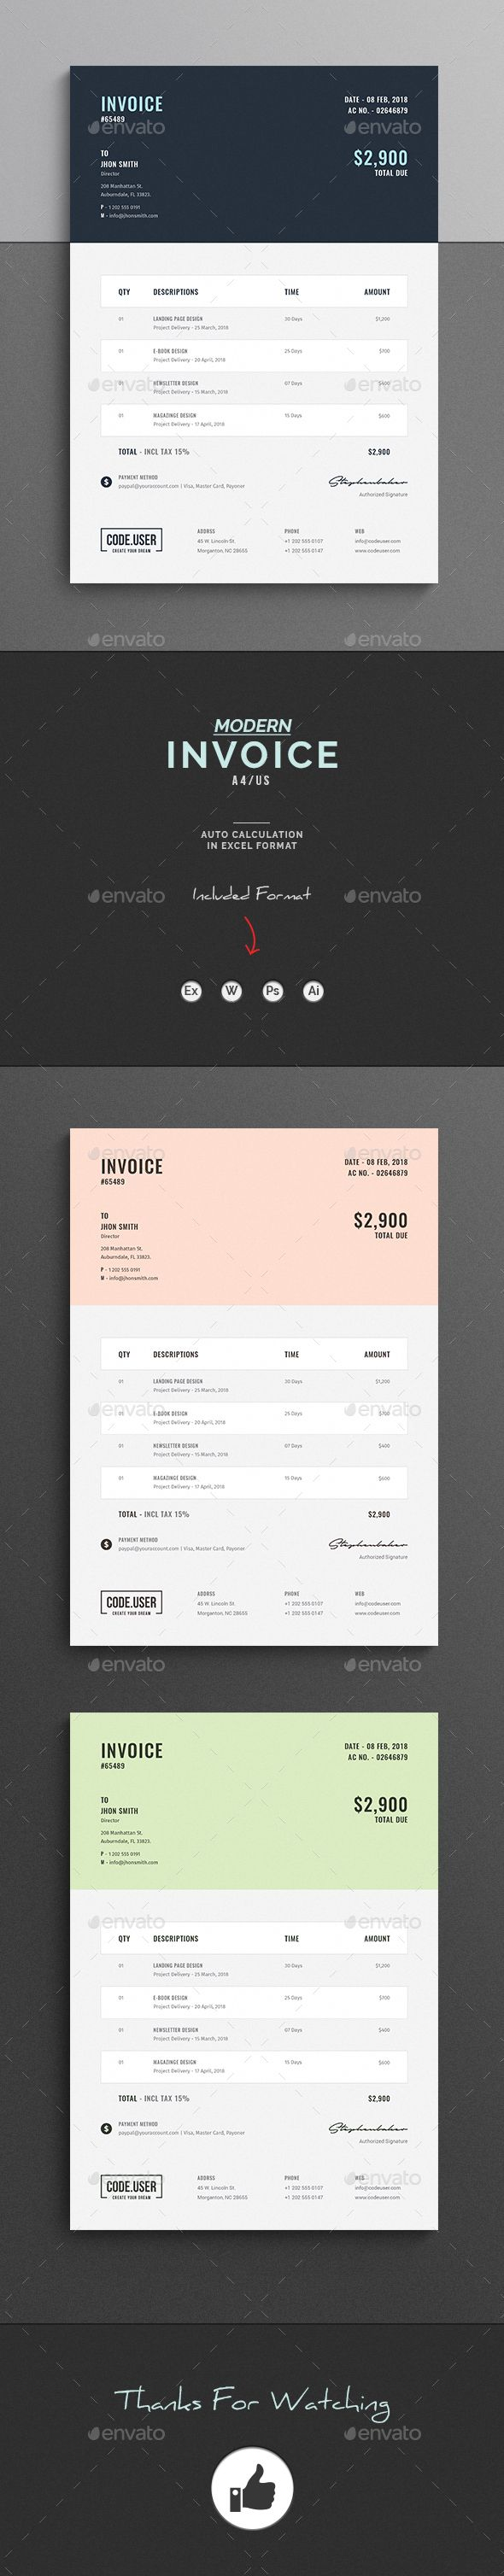 Email Invoices Cool Invoice  Template Brand Identity And Email Marketing Design